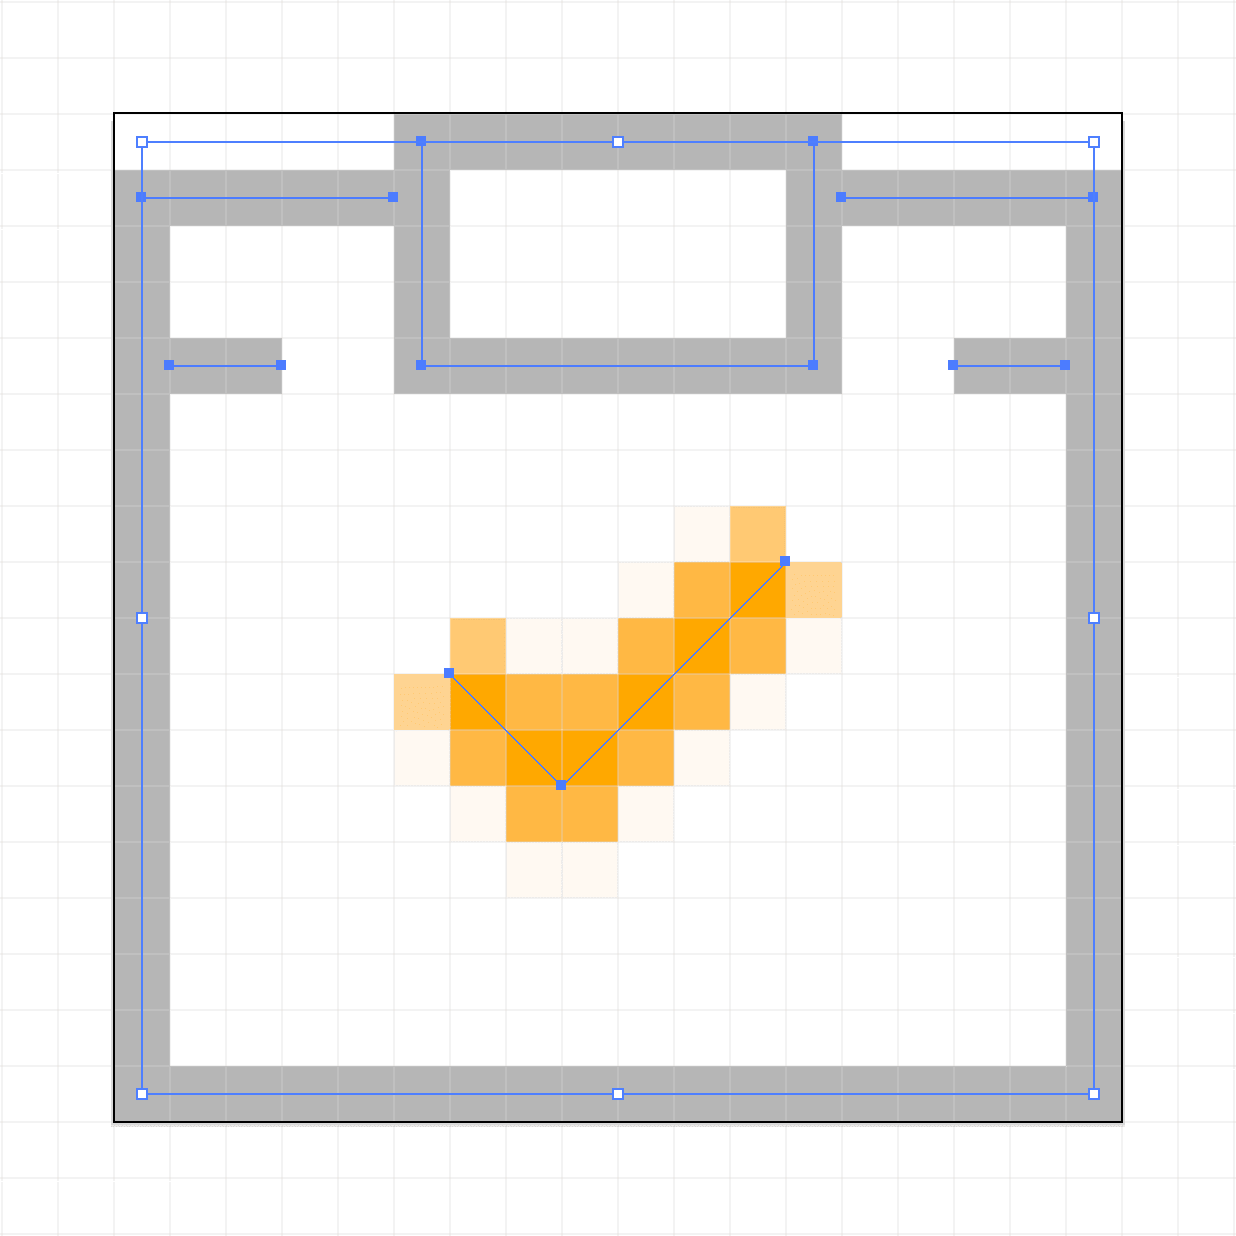 Strokes on the Pixel Grid